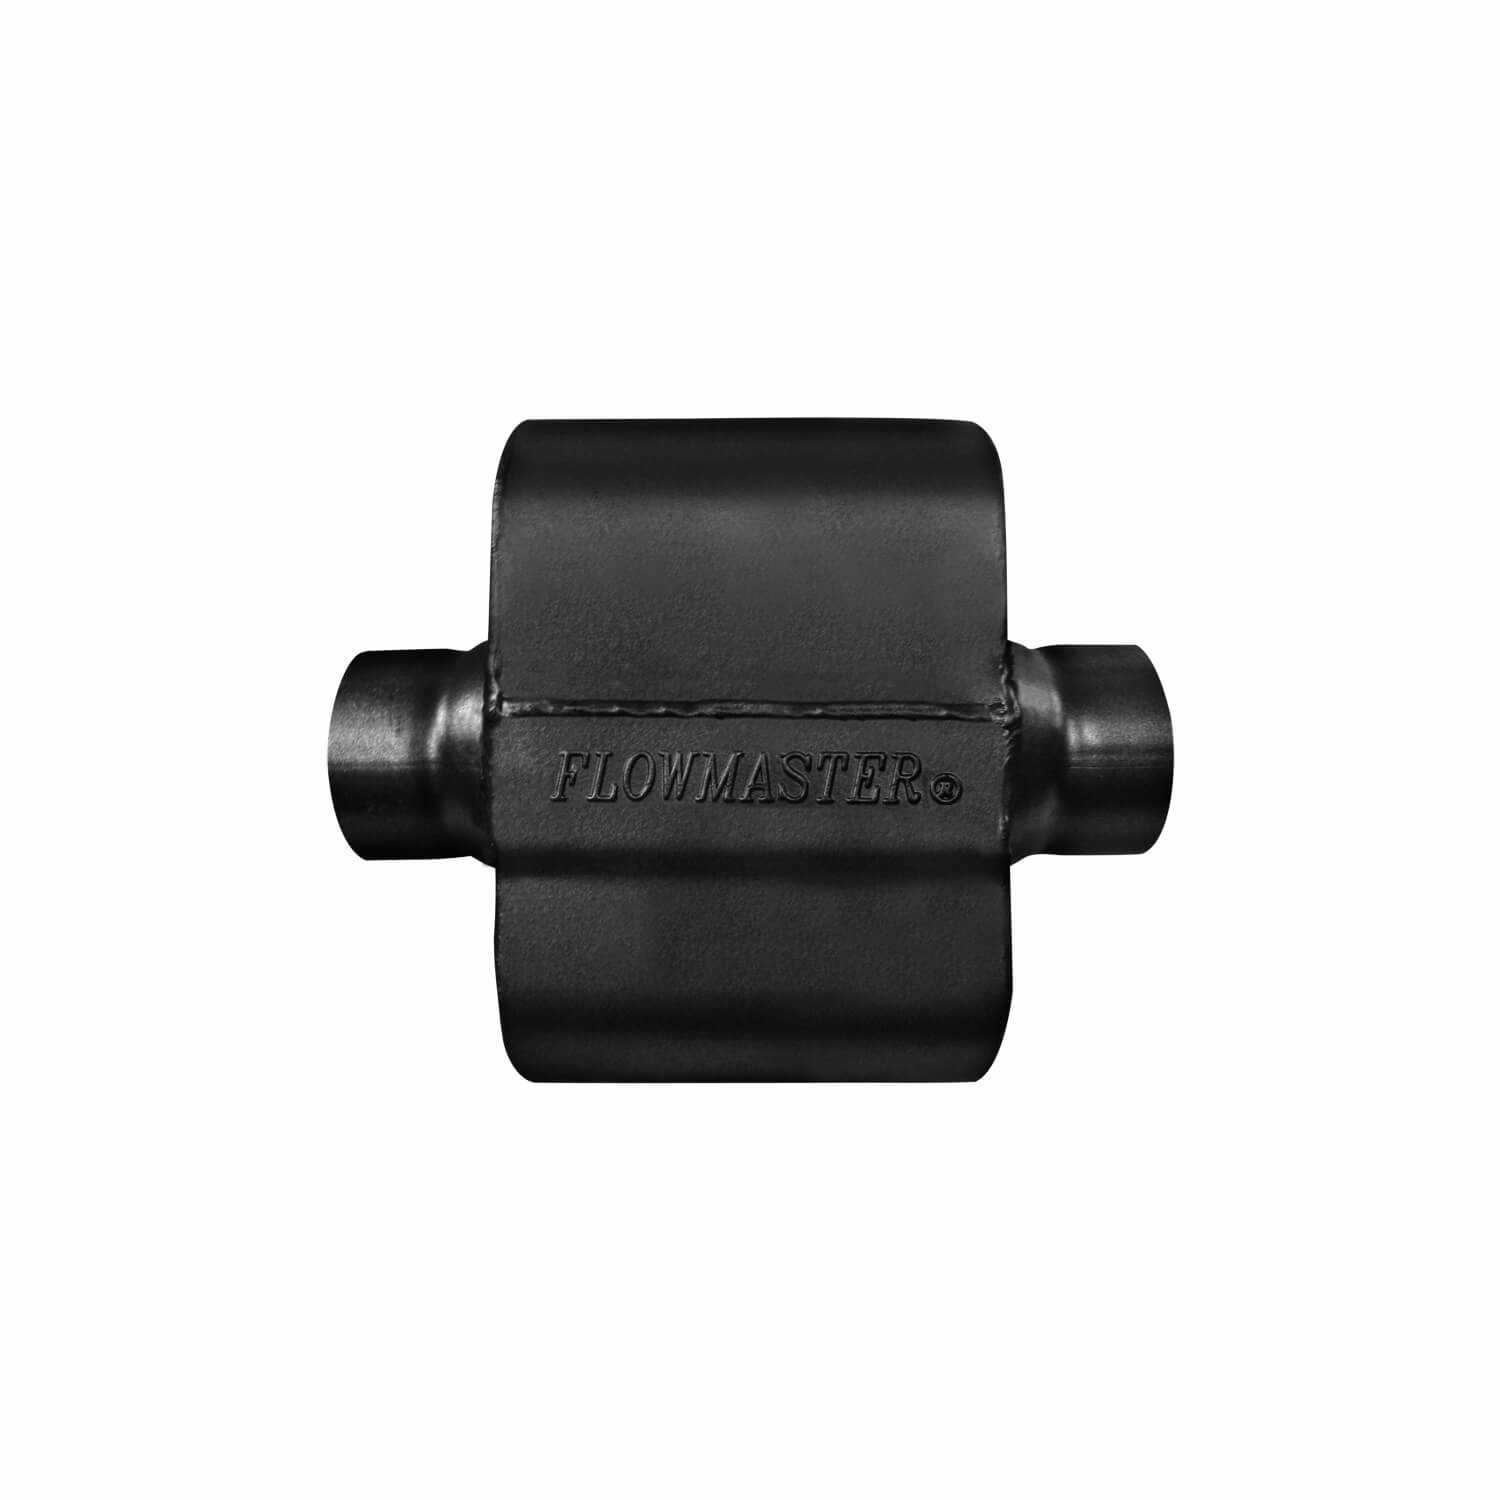 8325108 Flowmaster 10 Series™ Delta Force Race Muffler